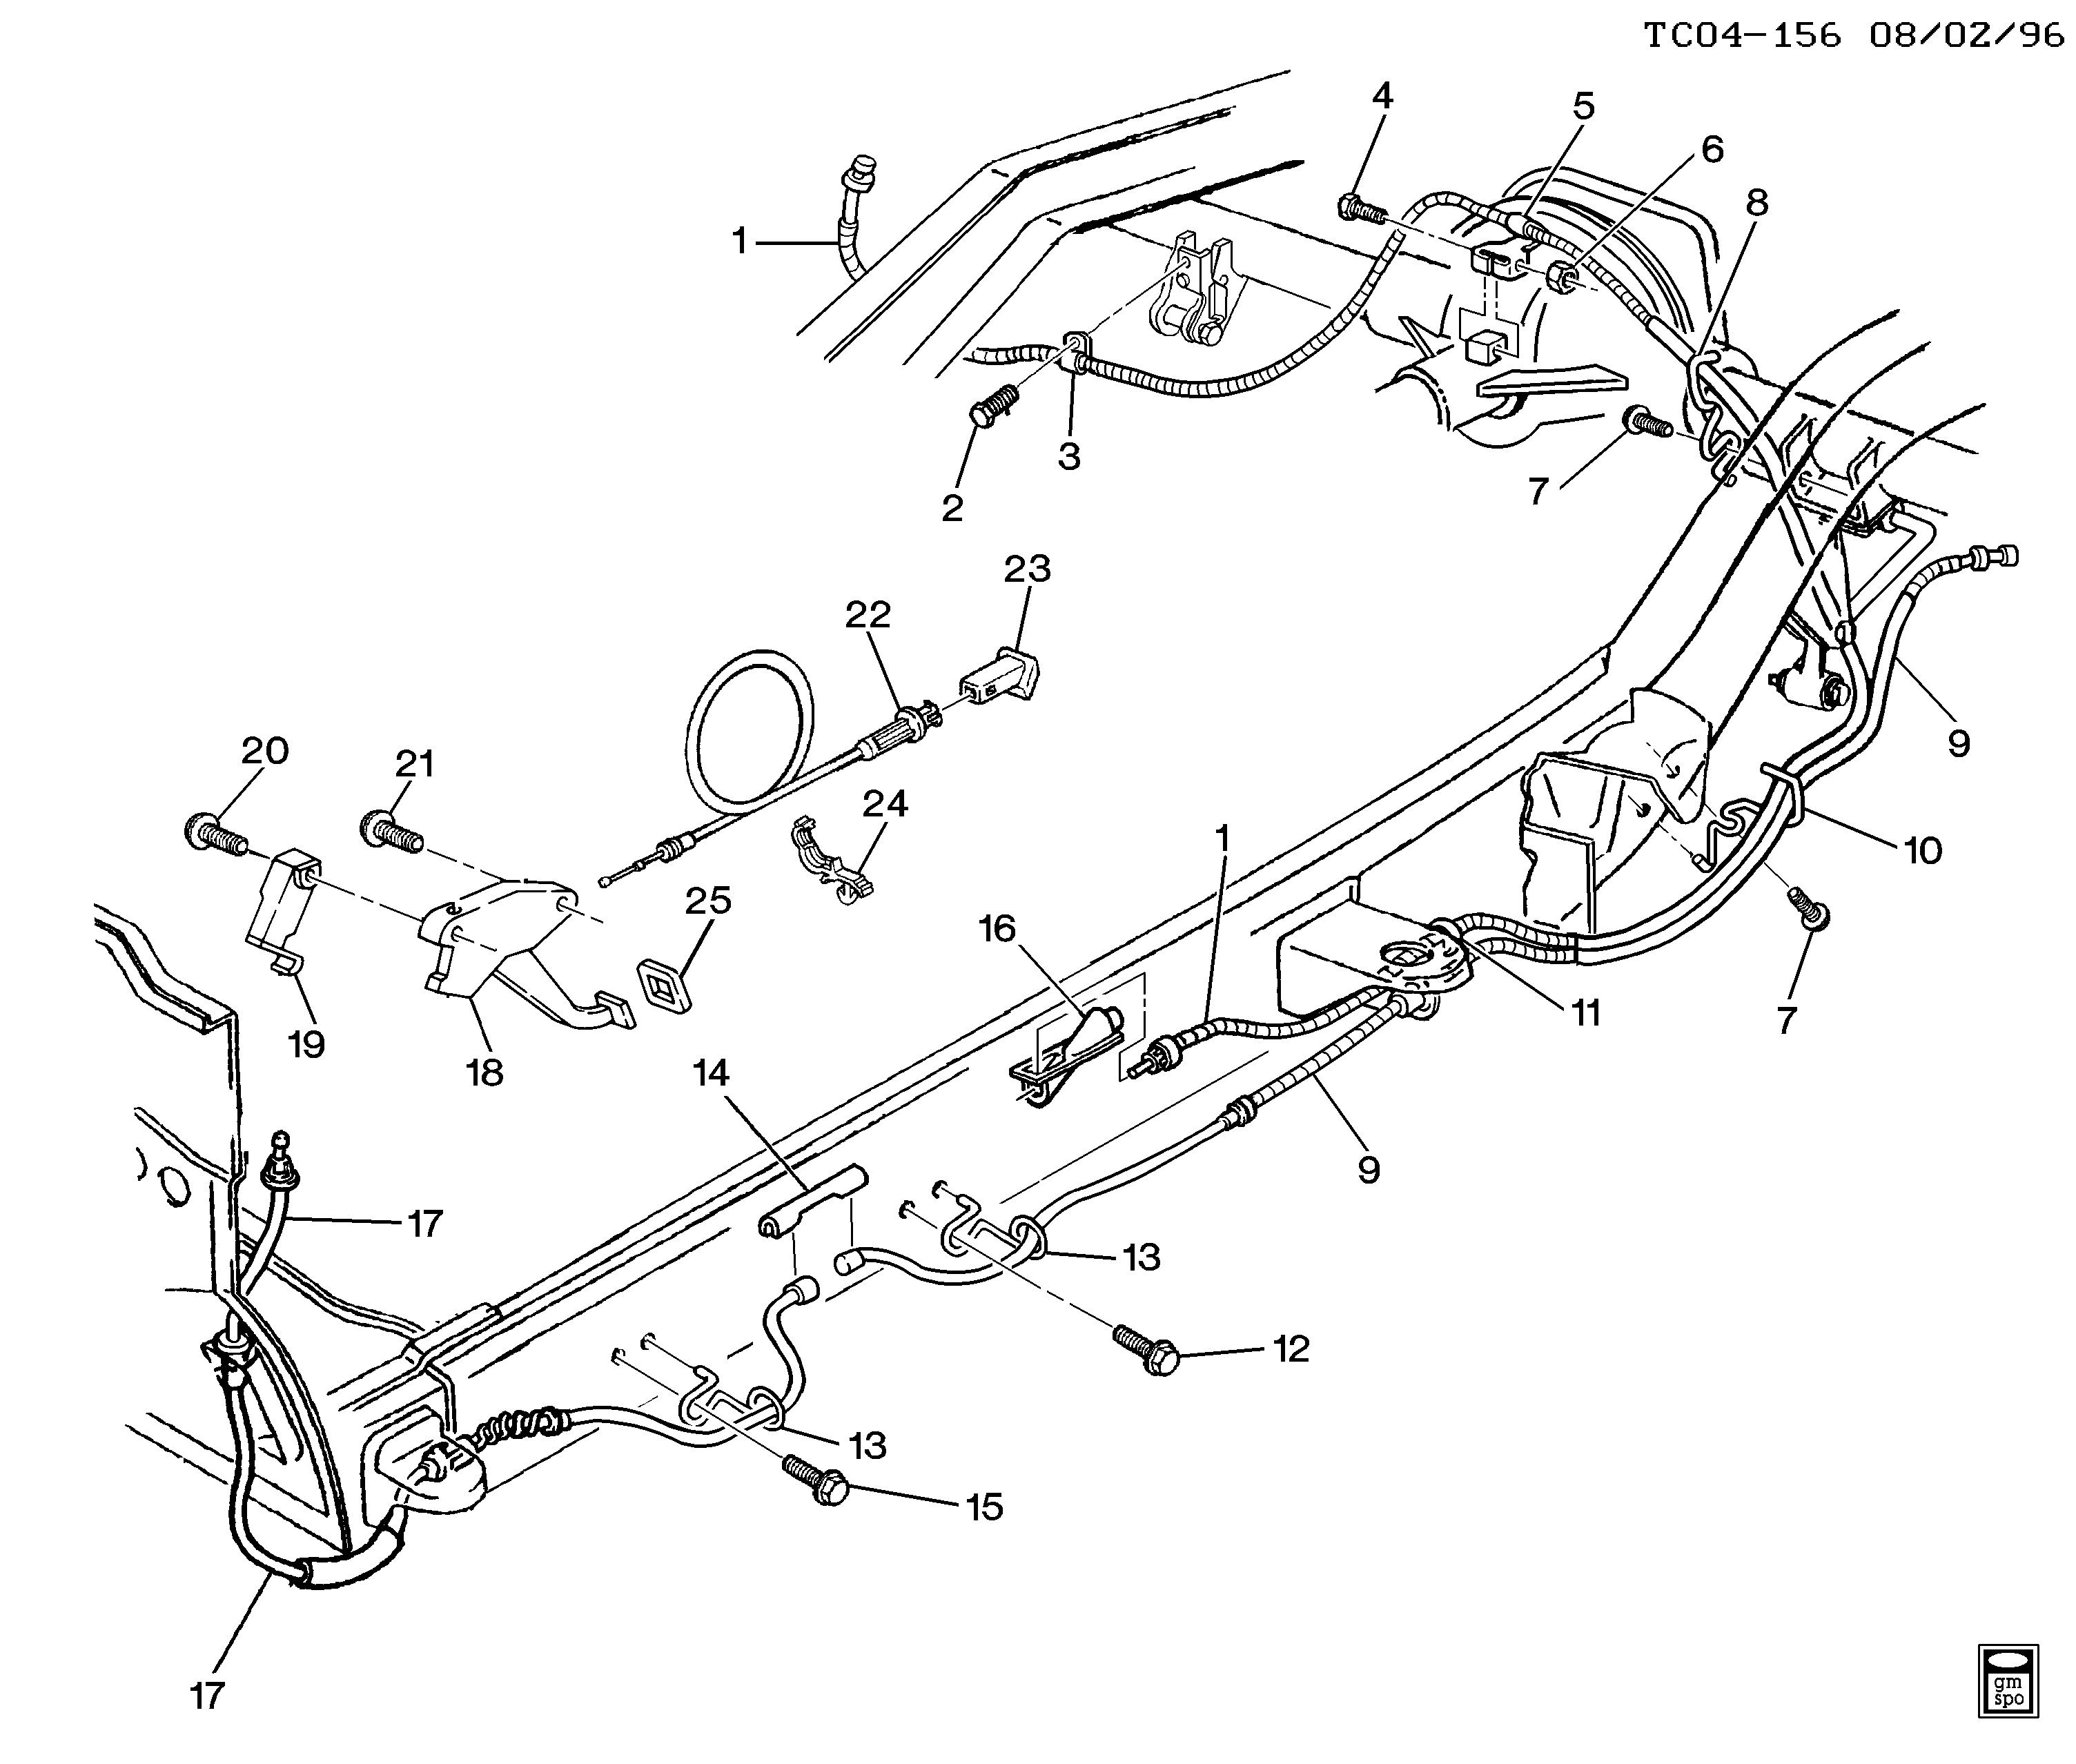 31 Chevy Silverado Emergency Brake Cable Diagram